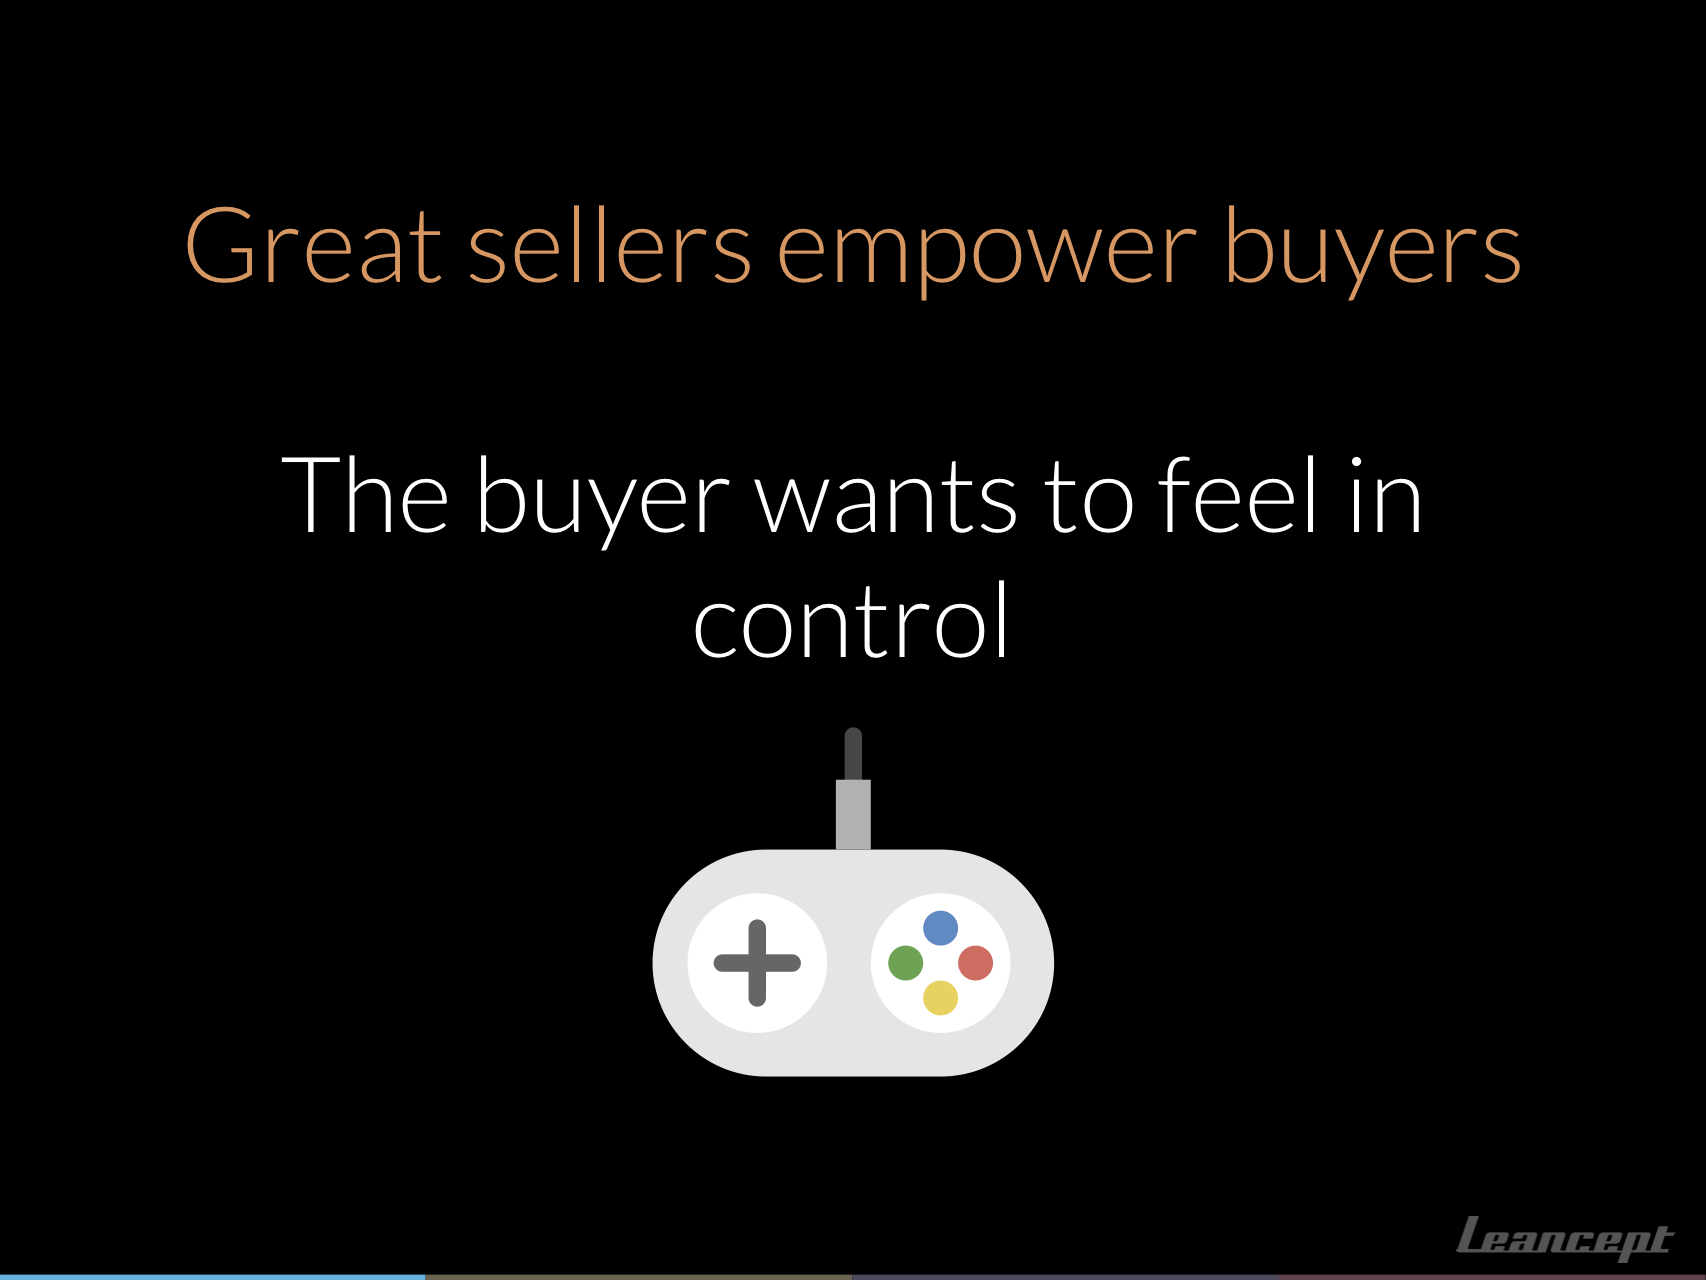 Great sellers empower buyers.